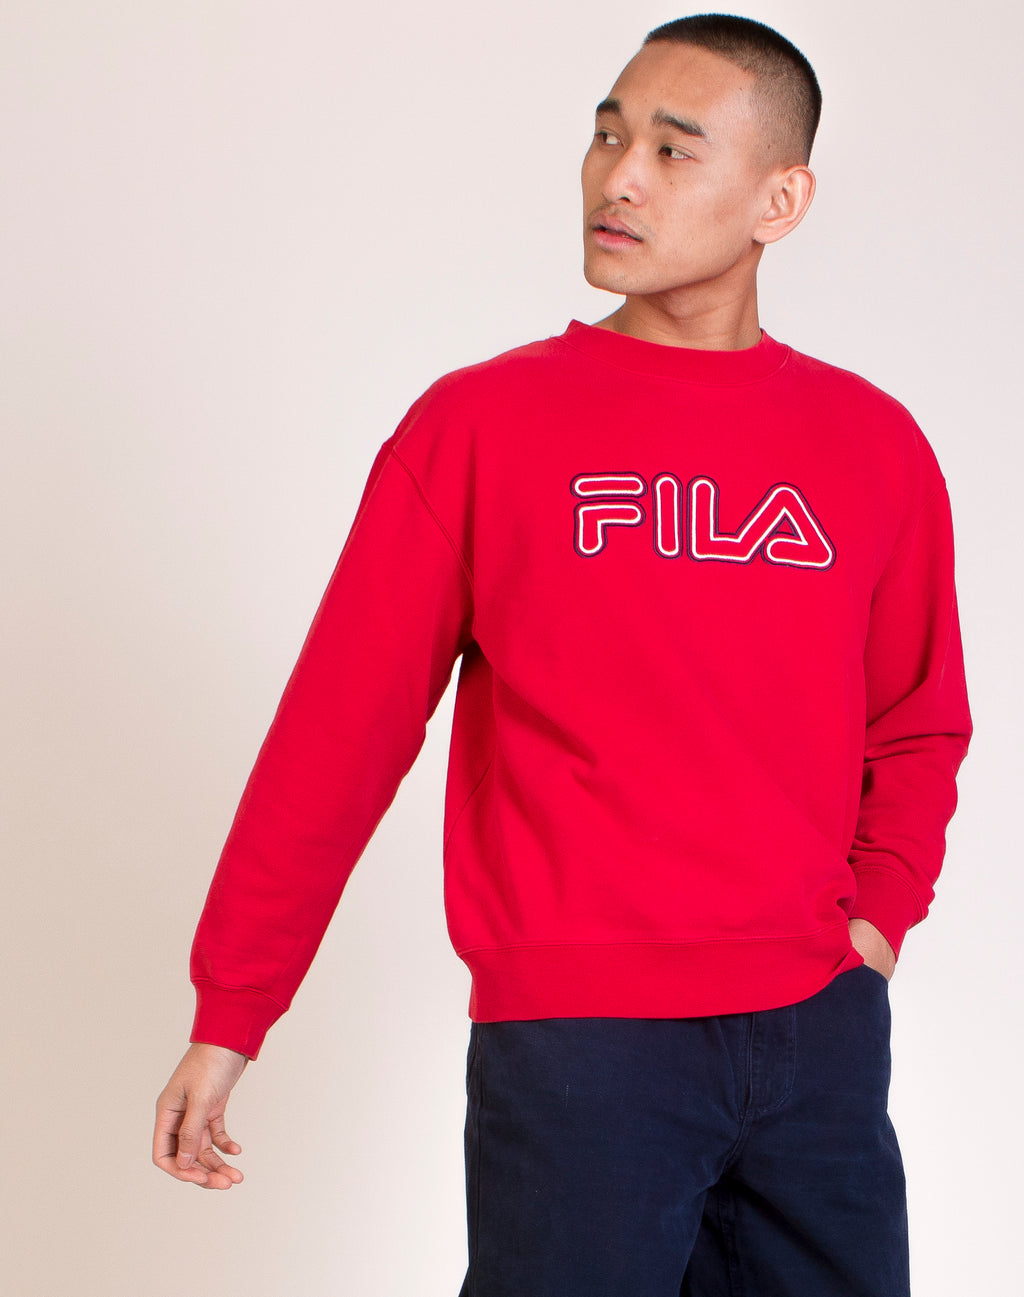 FILA RED LOGO JUMPER